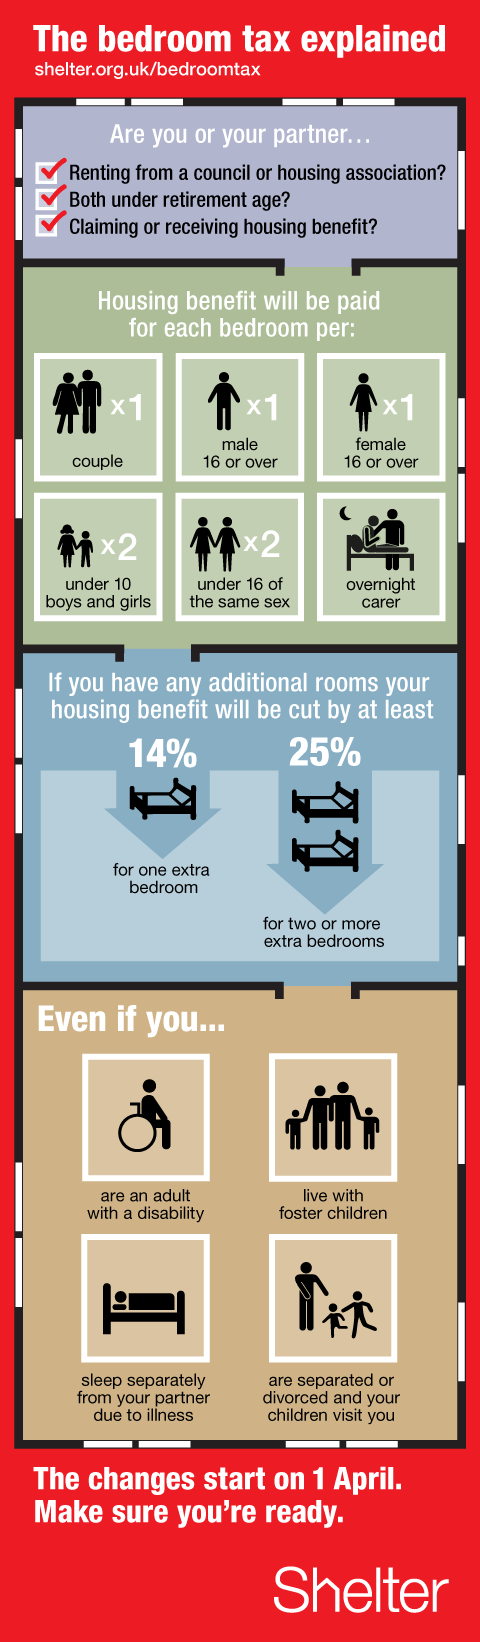 Bedroom tax checker infographic by Shelter